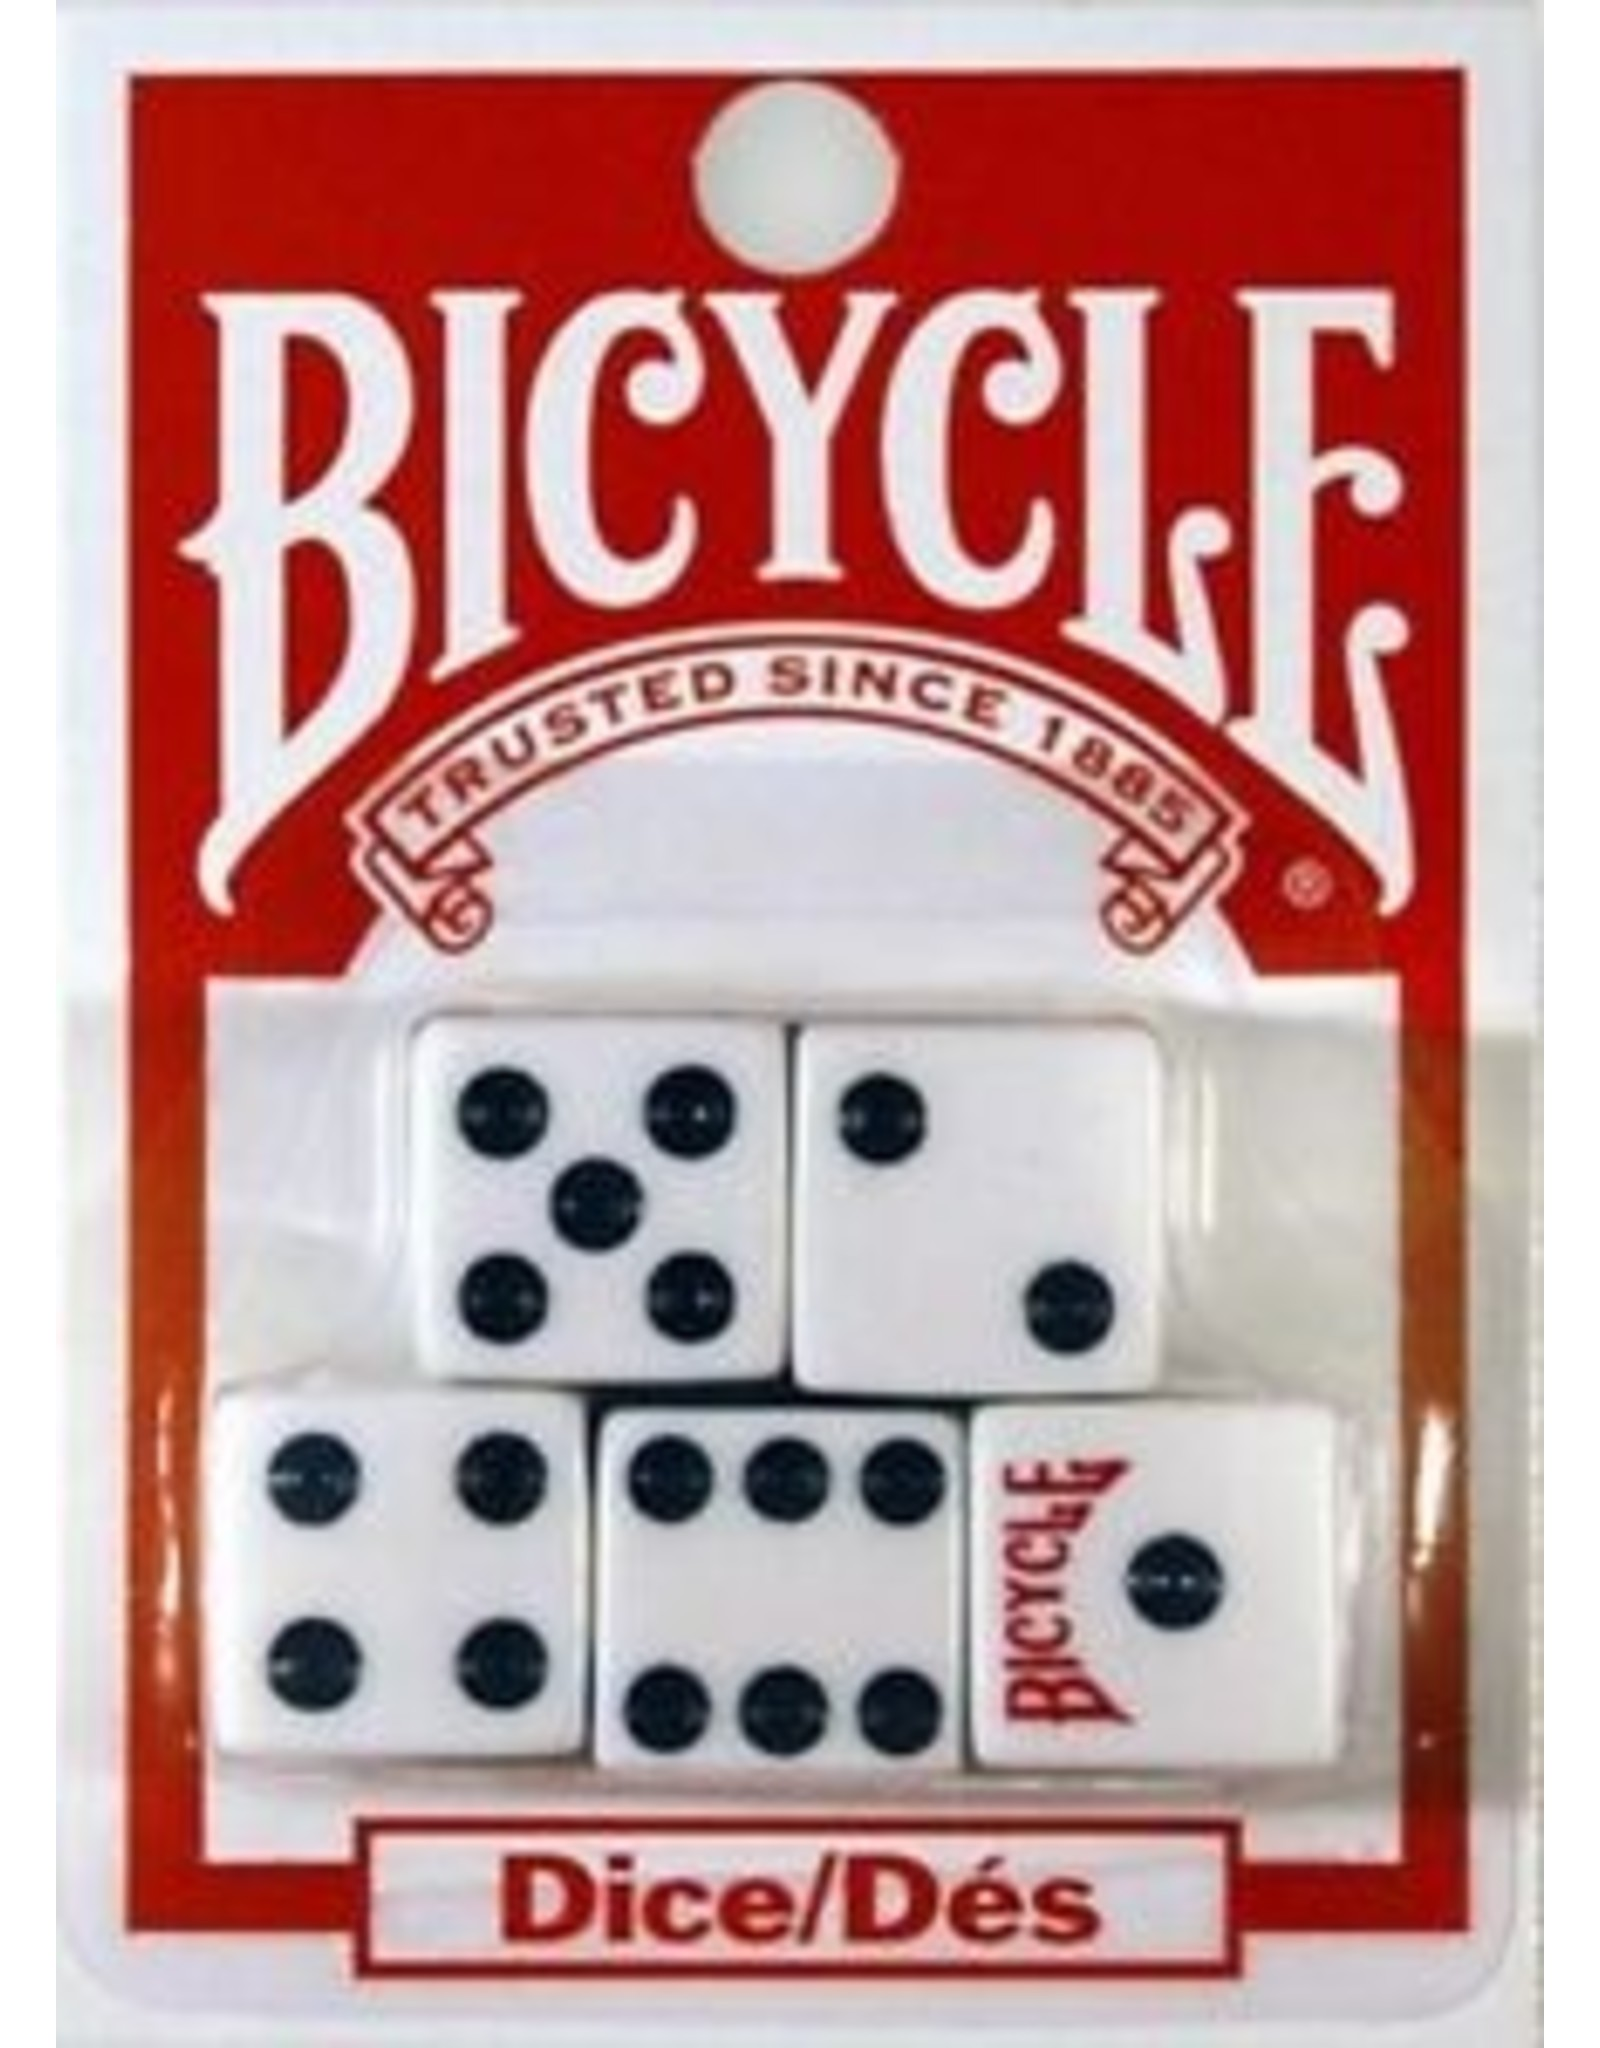 US Playing Card Co. Bicycle 5 Pack of Dice